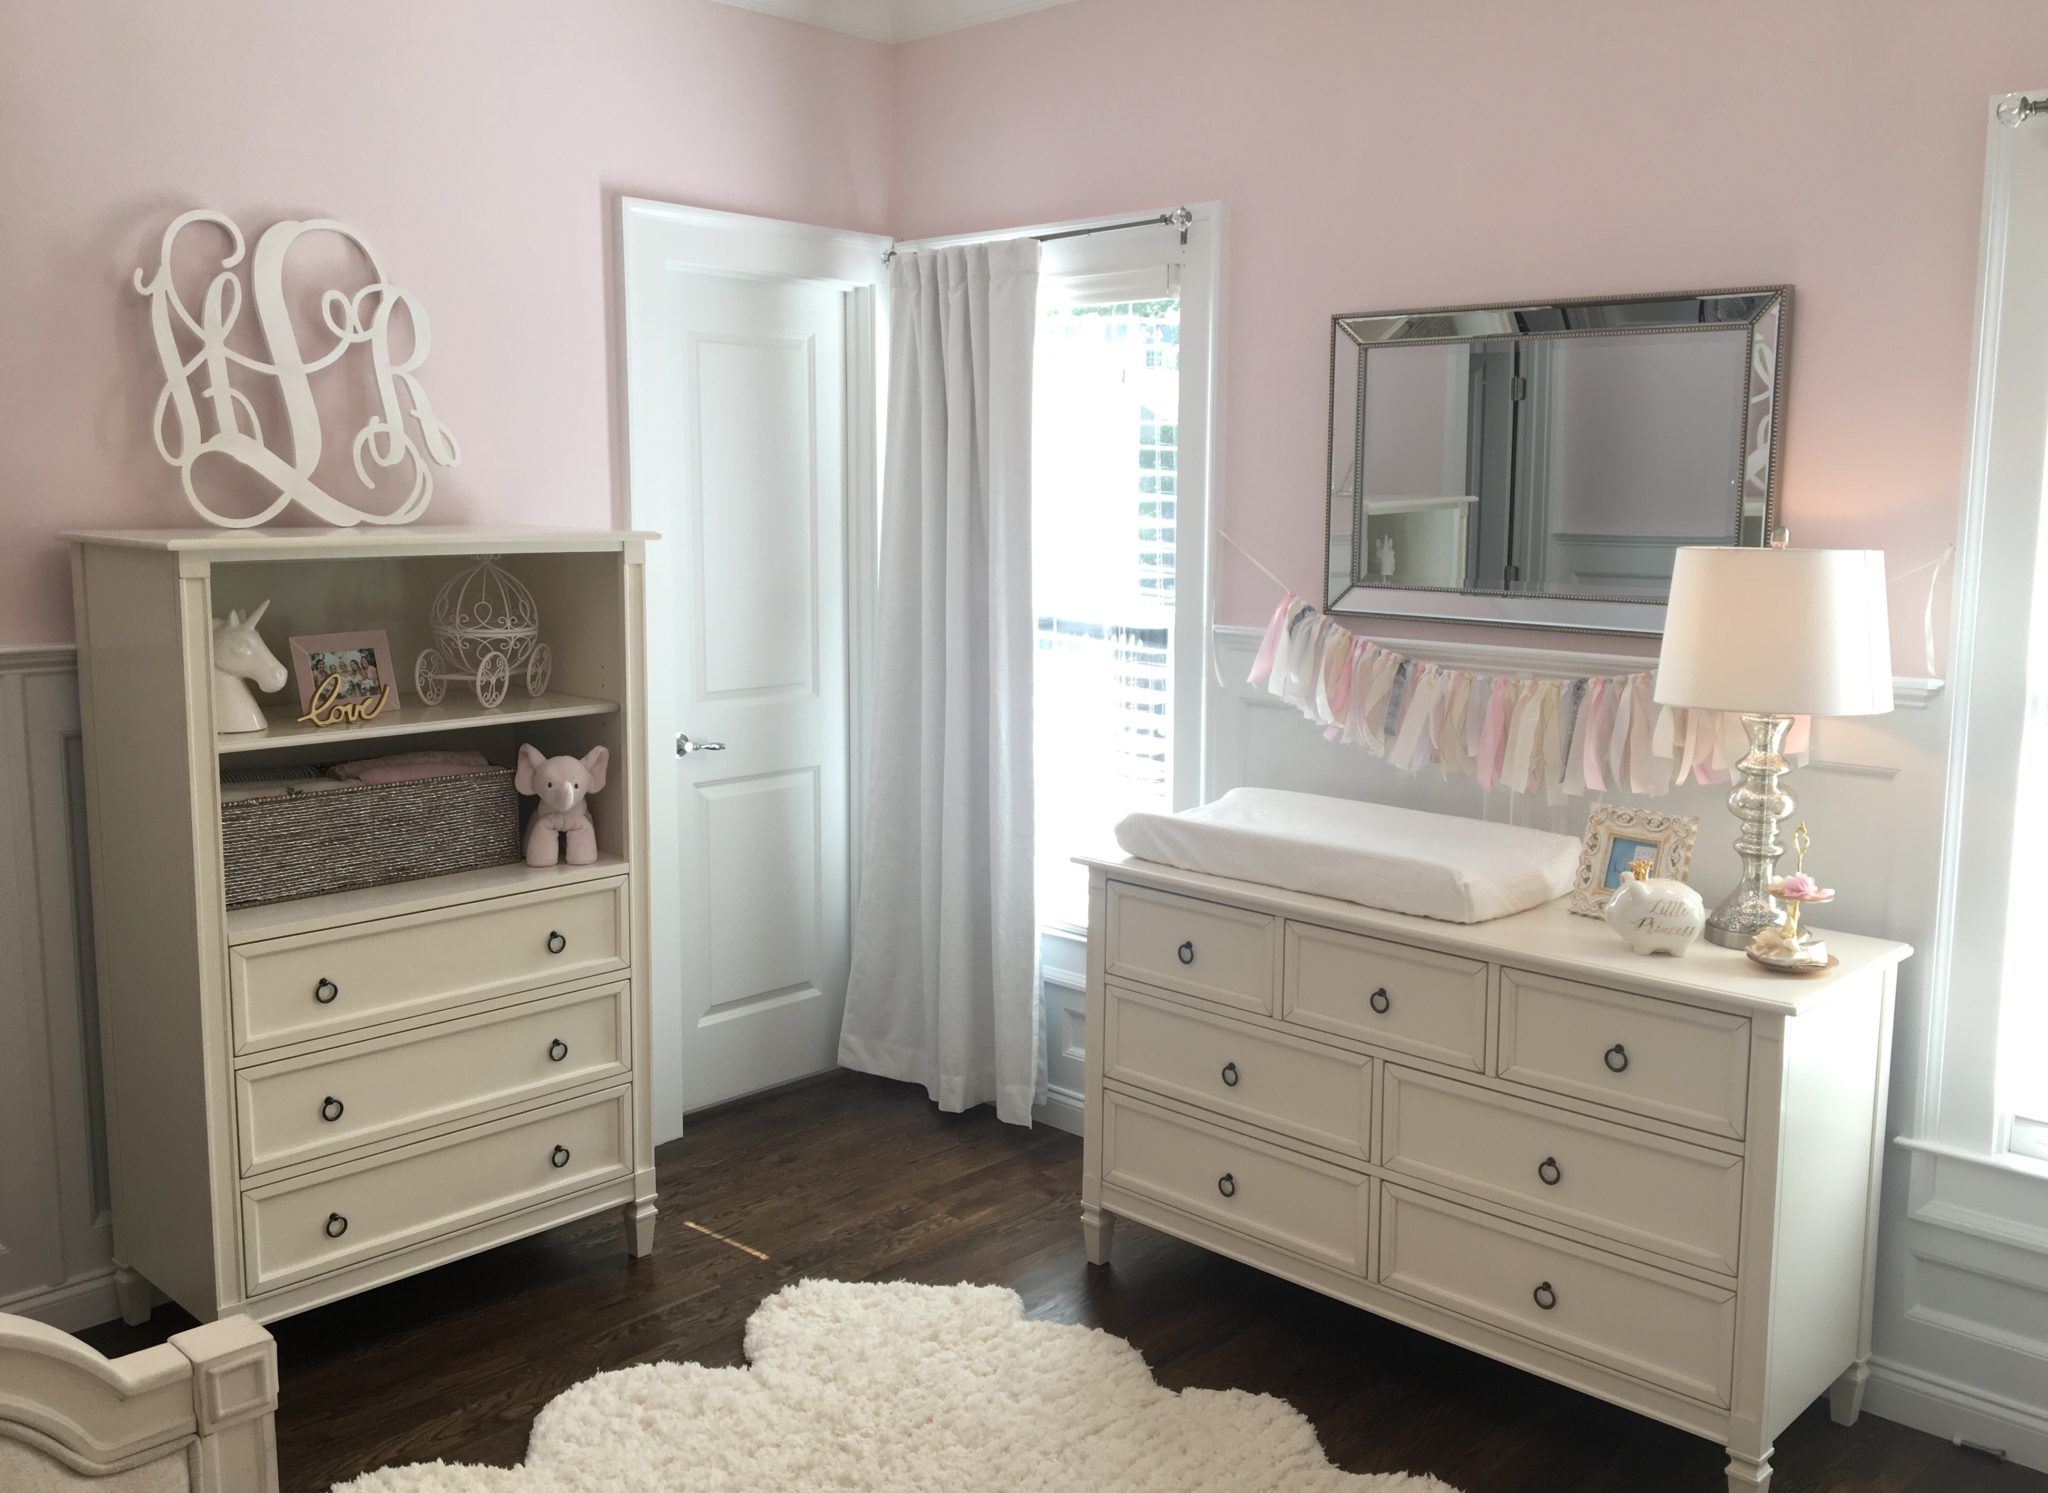 Pink and White Sweet Dreams Nursery - Project Nursery